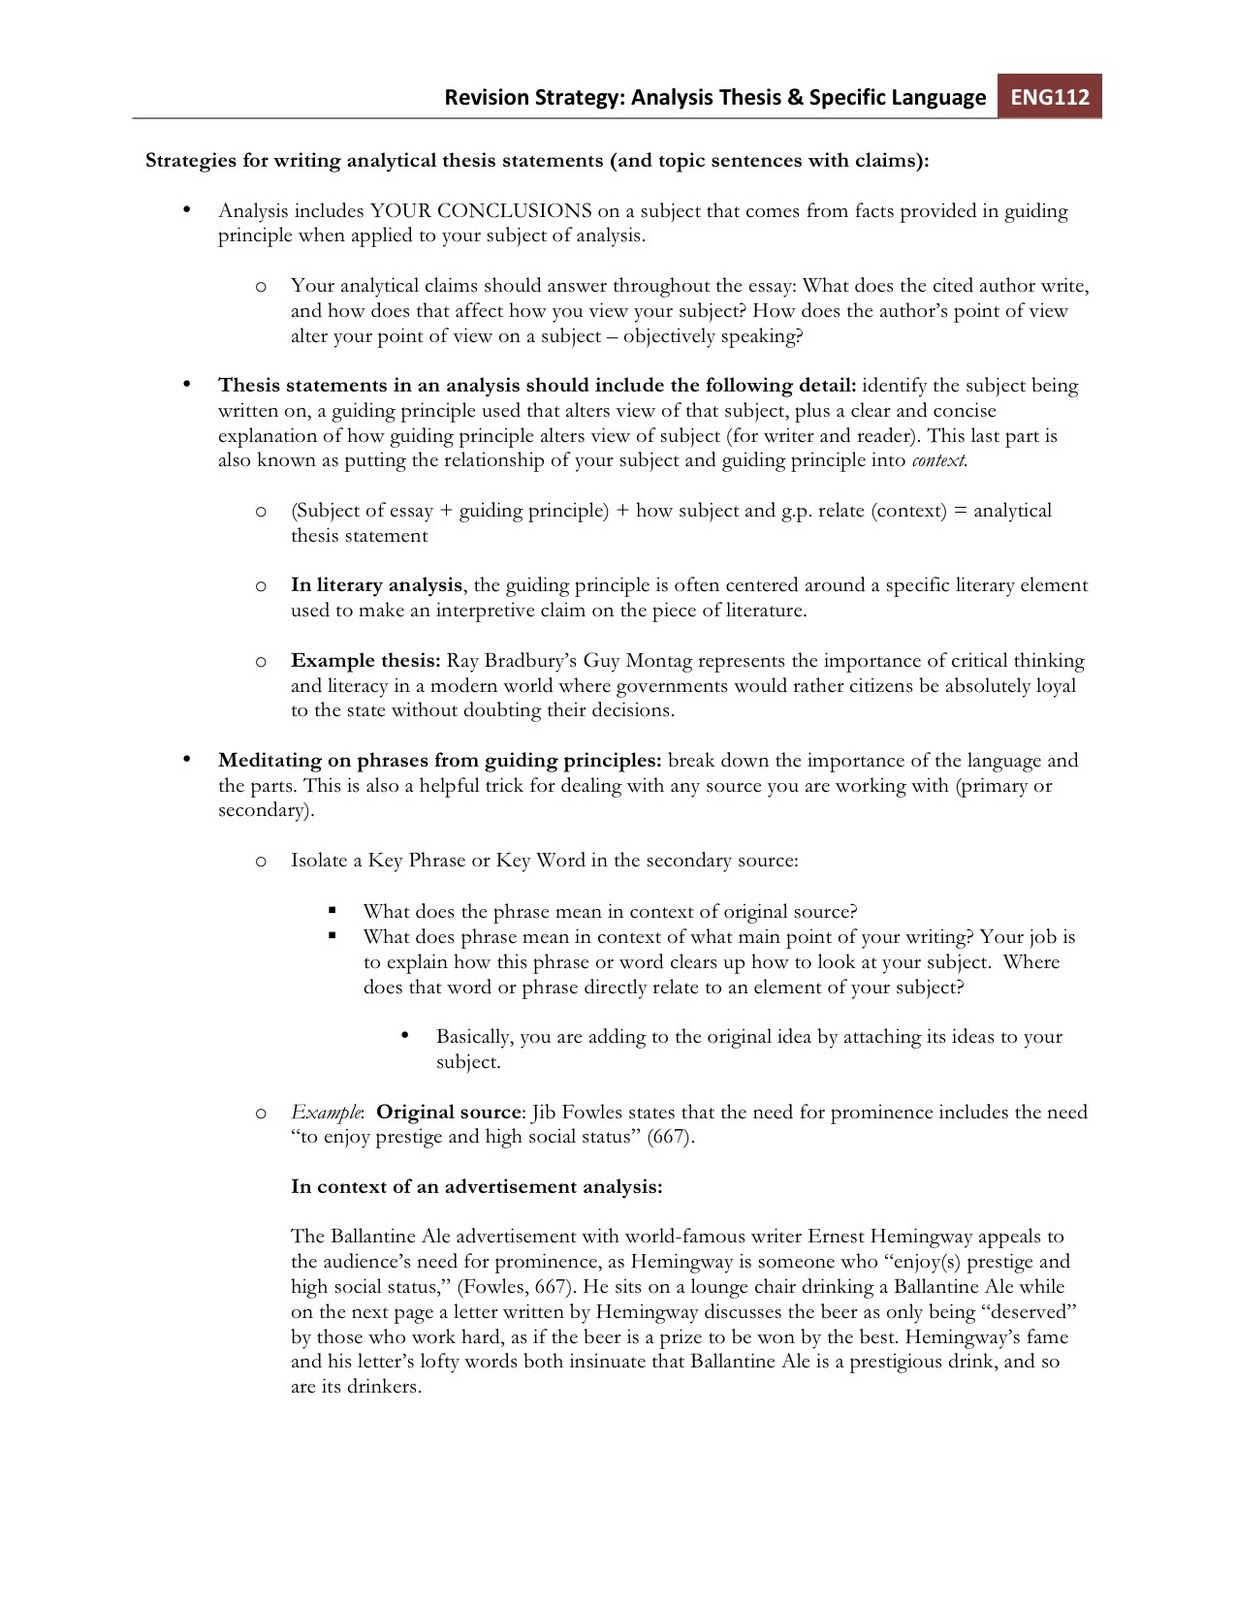 006 Strategiesforwritinganalyticalthesisstatements Essay Example Phenomenal Eslrs Full